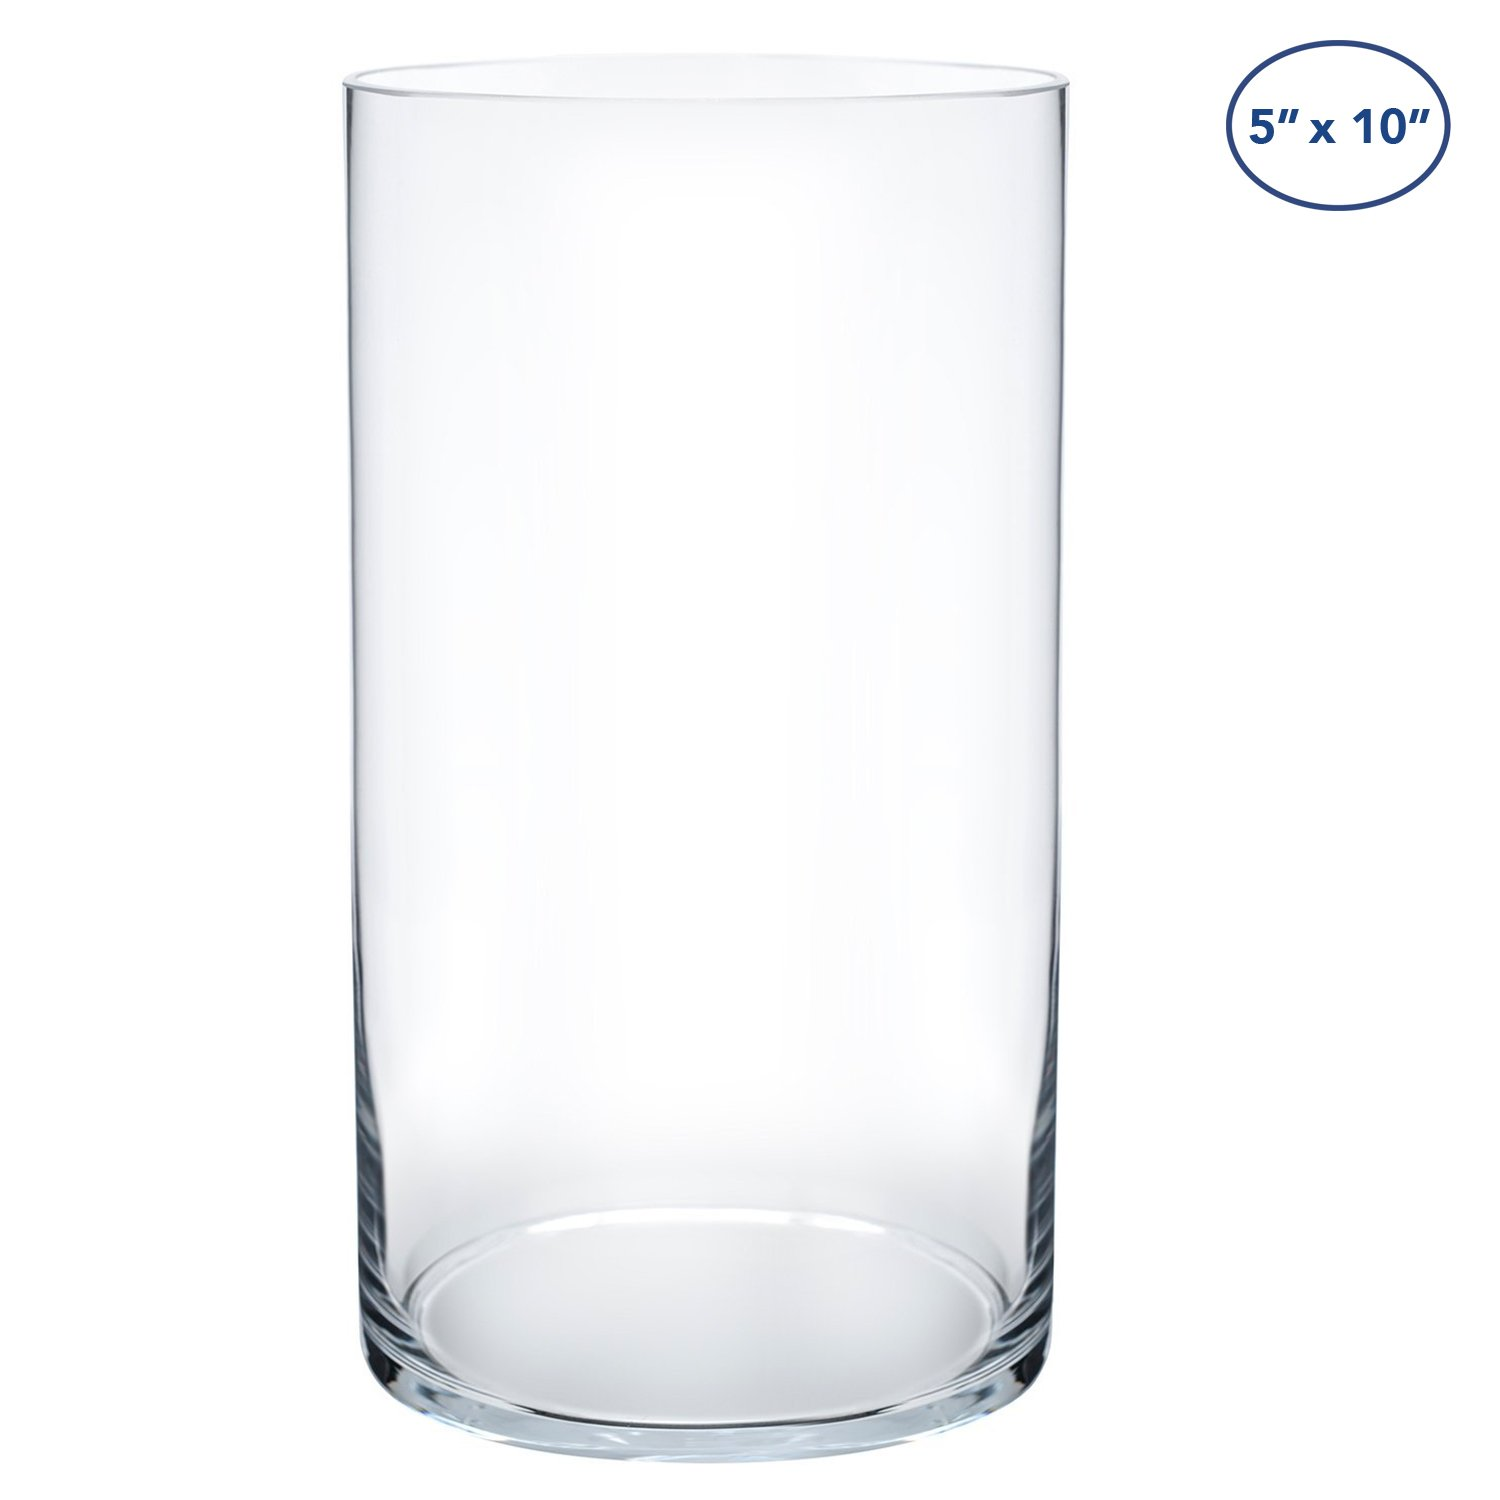 Royal Imports Flower Glass Vase Decorative Centerpiece For Home or Wedding by Cylinder Shape, 10'' Tall, 5'' Opening, Clear